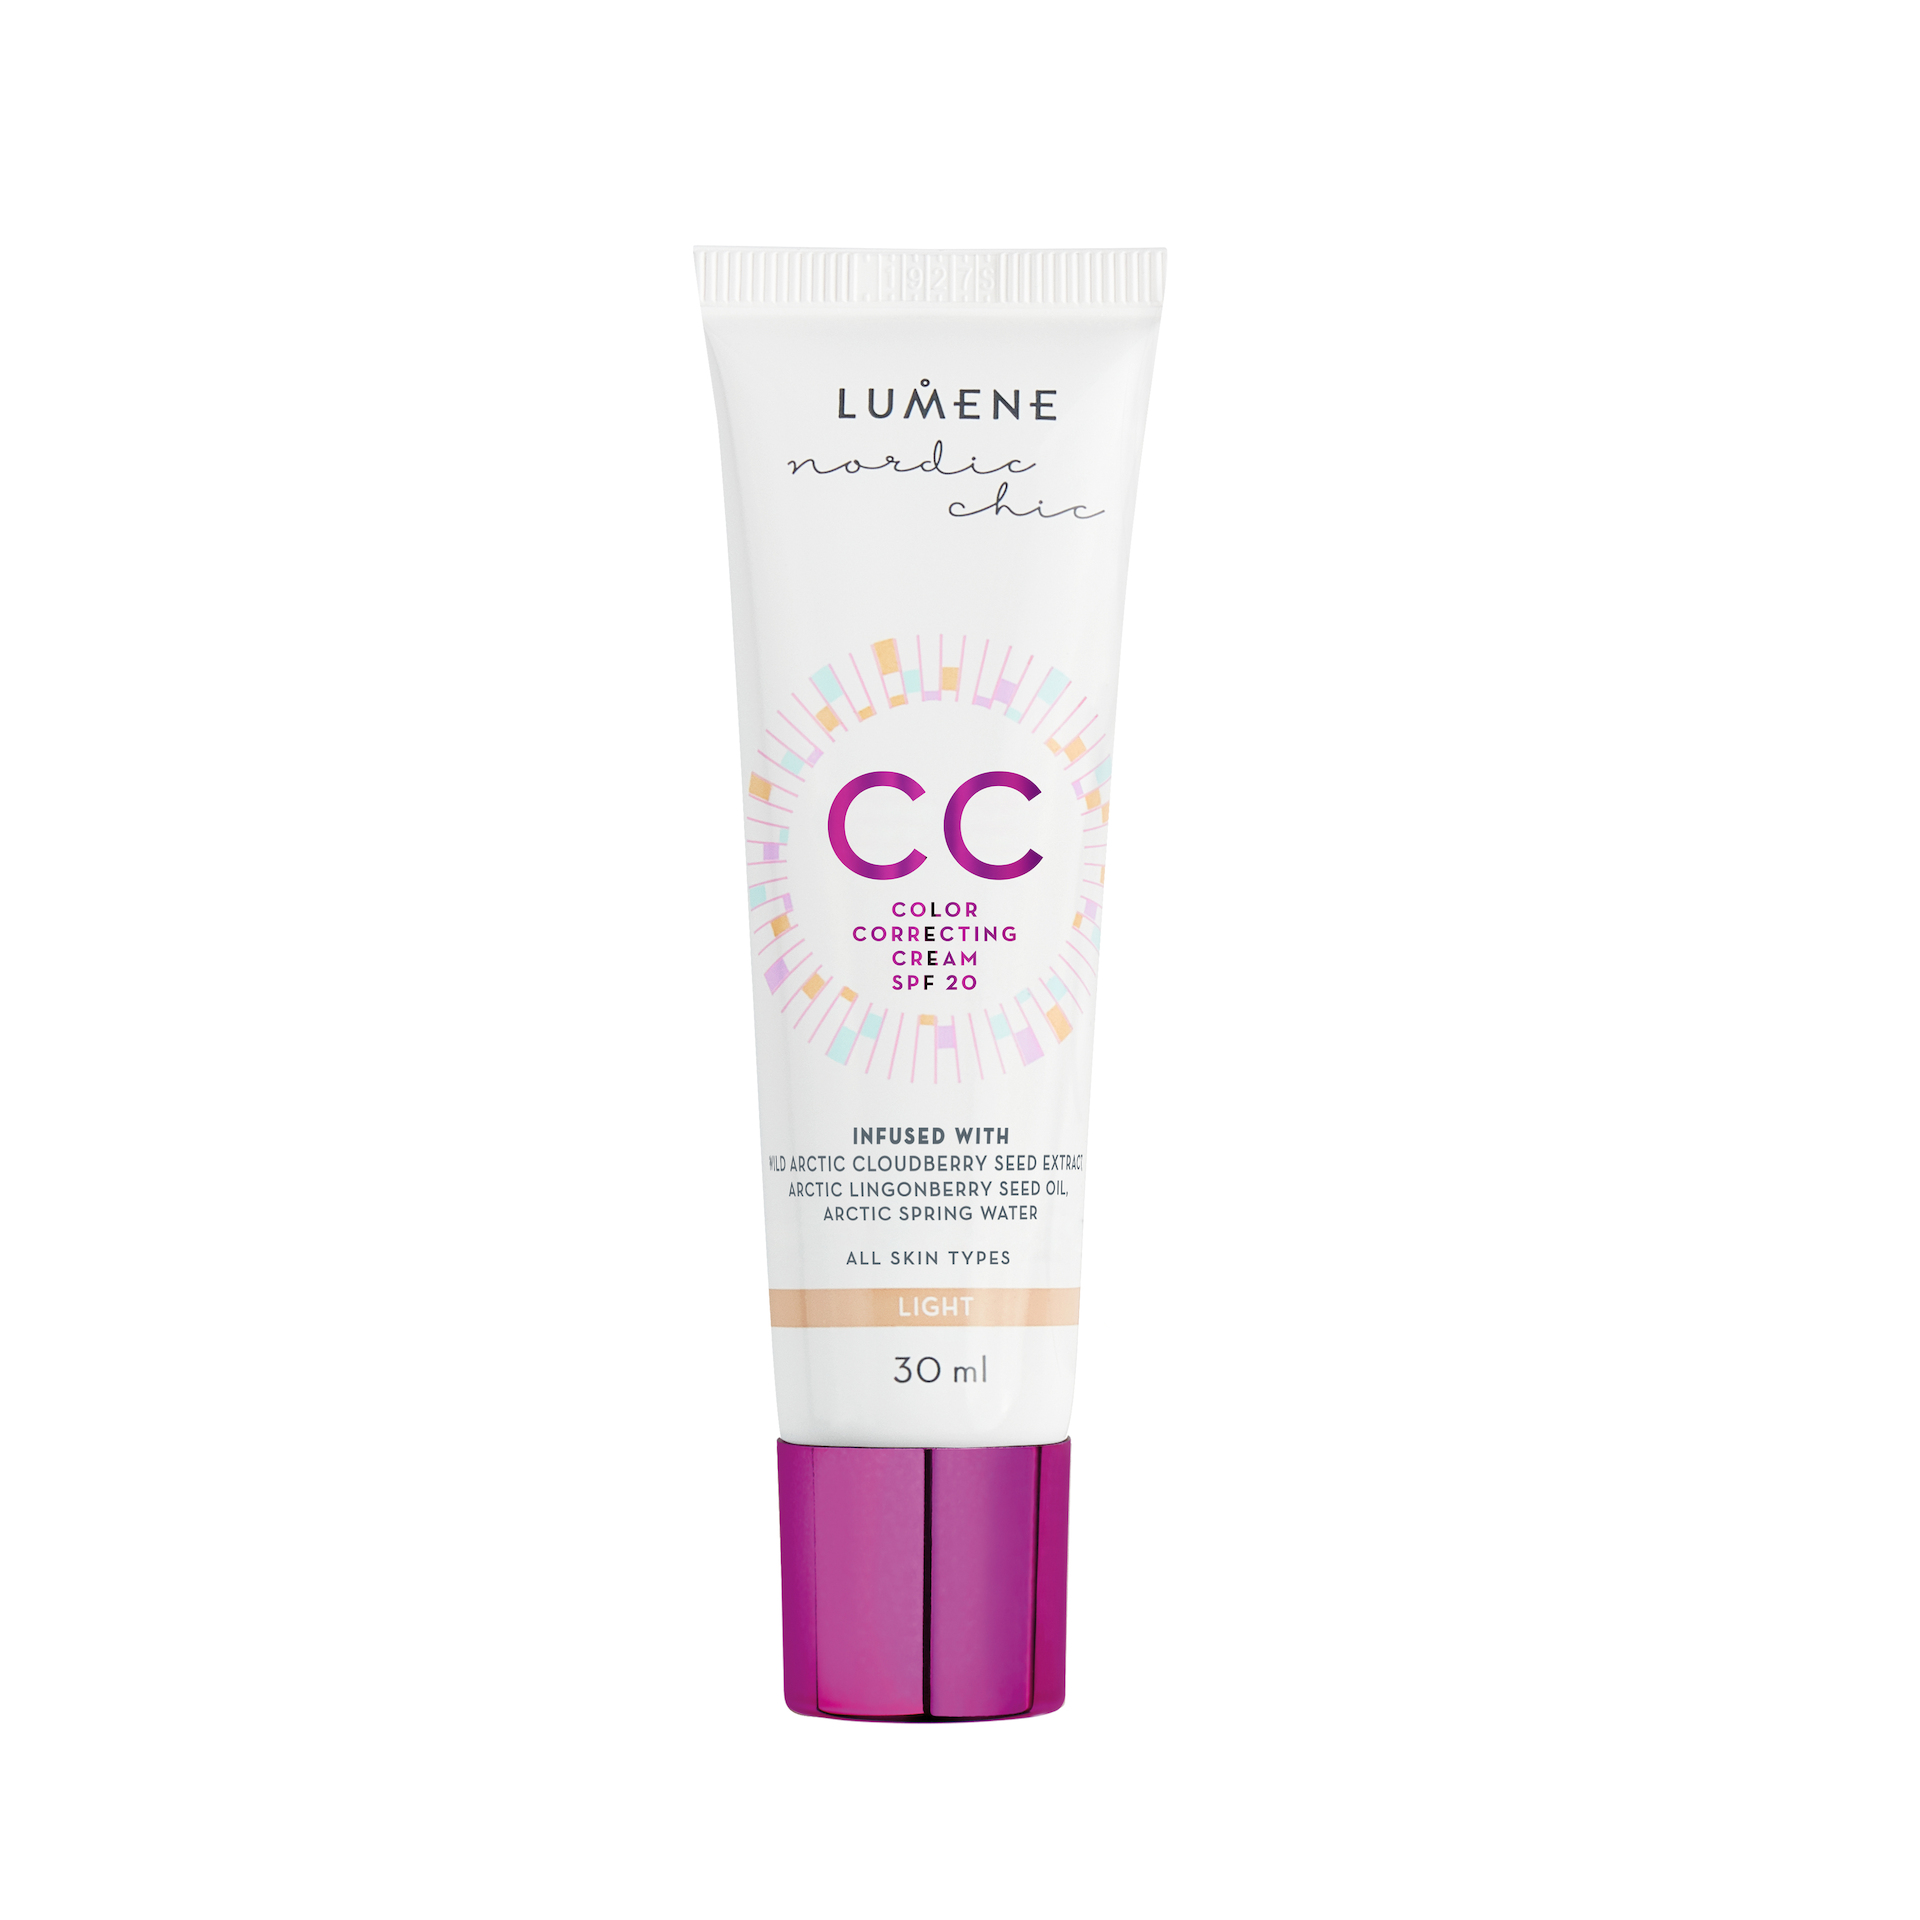 Nordic Chic CC Color Correcting Cream Light